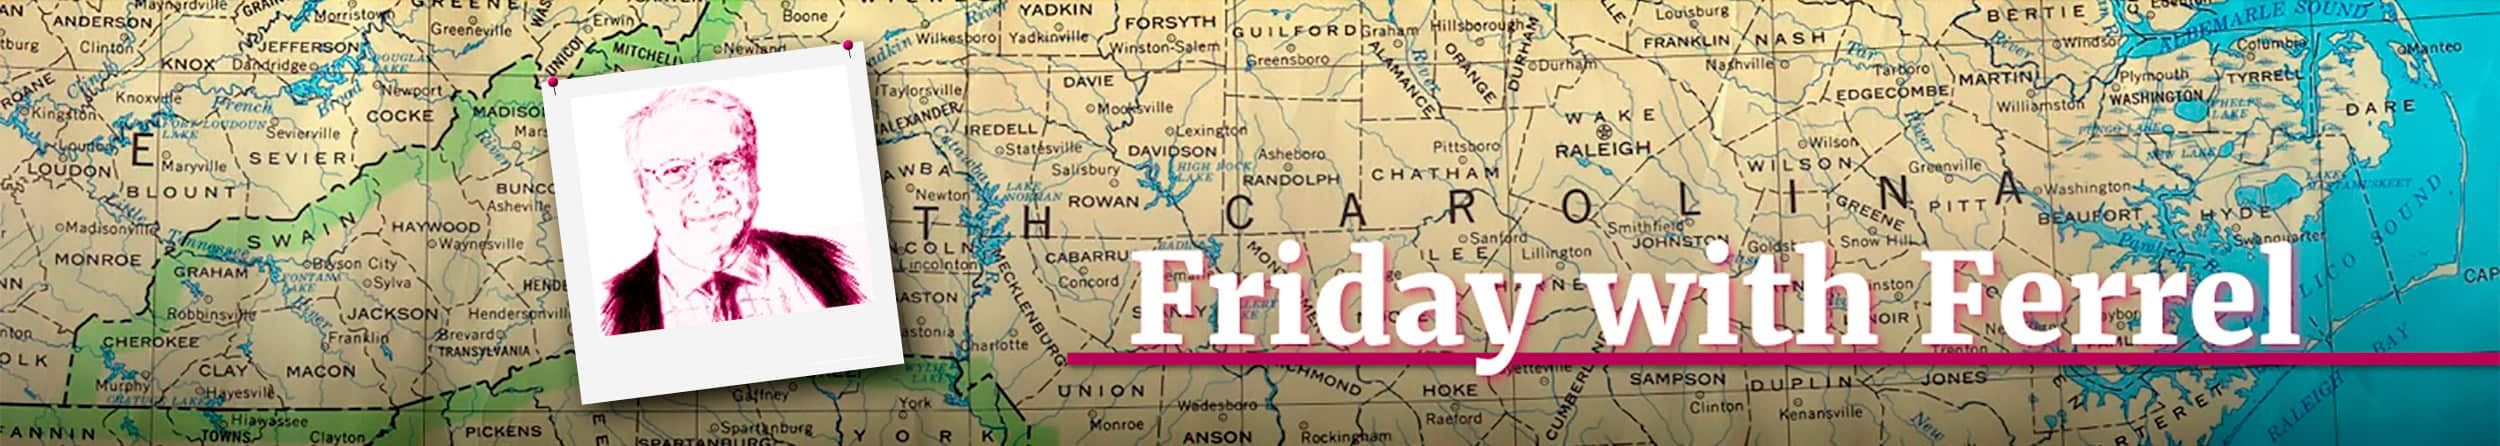 Friday with Ferrel: October 28, 2016